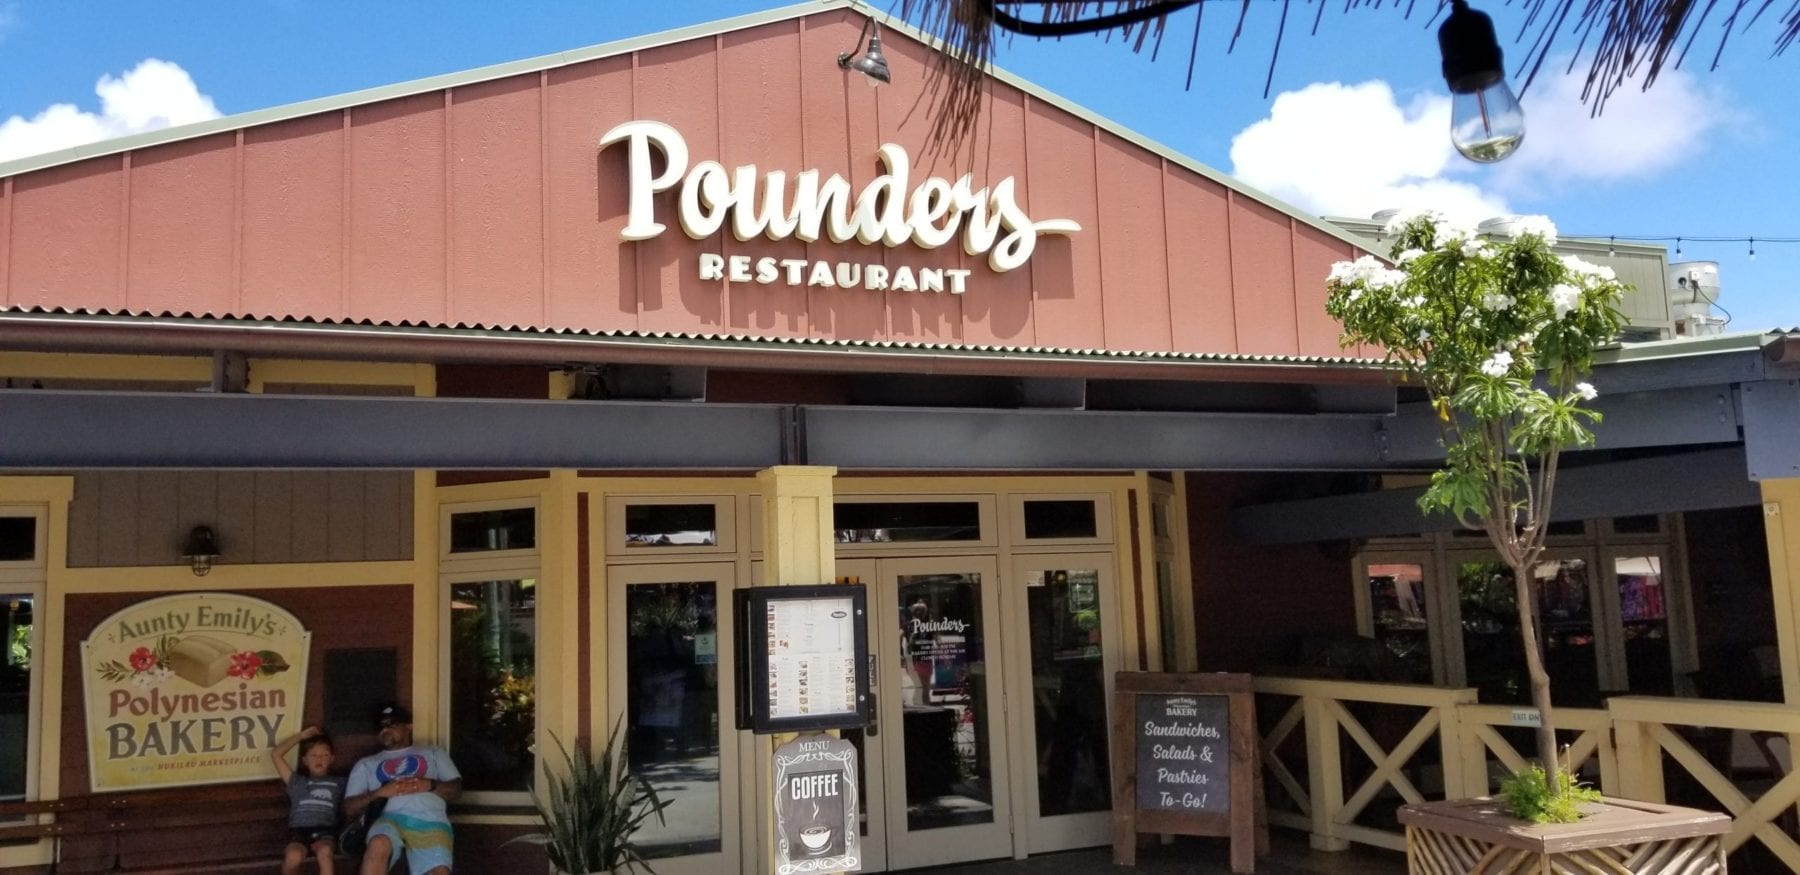 Pounders restaurant in Oahu